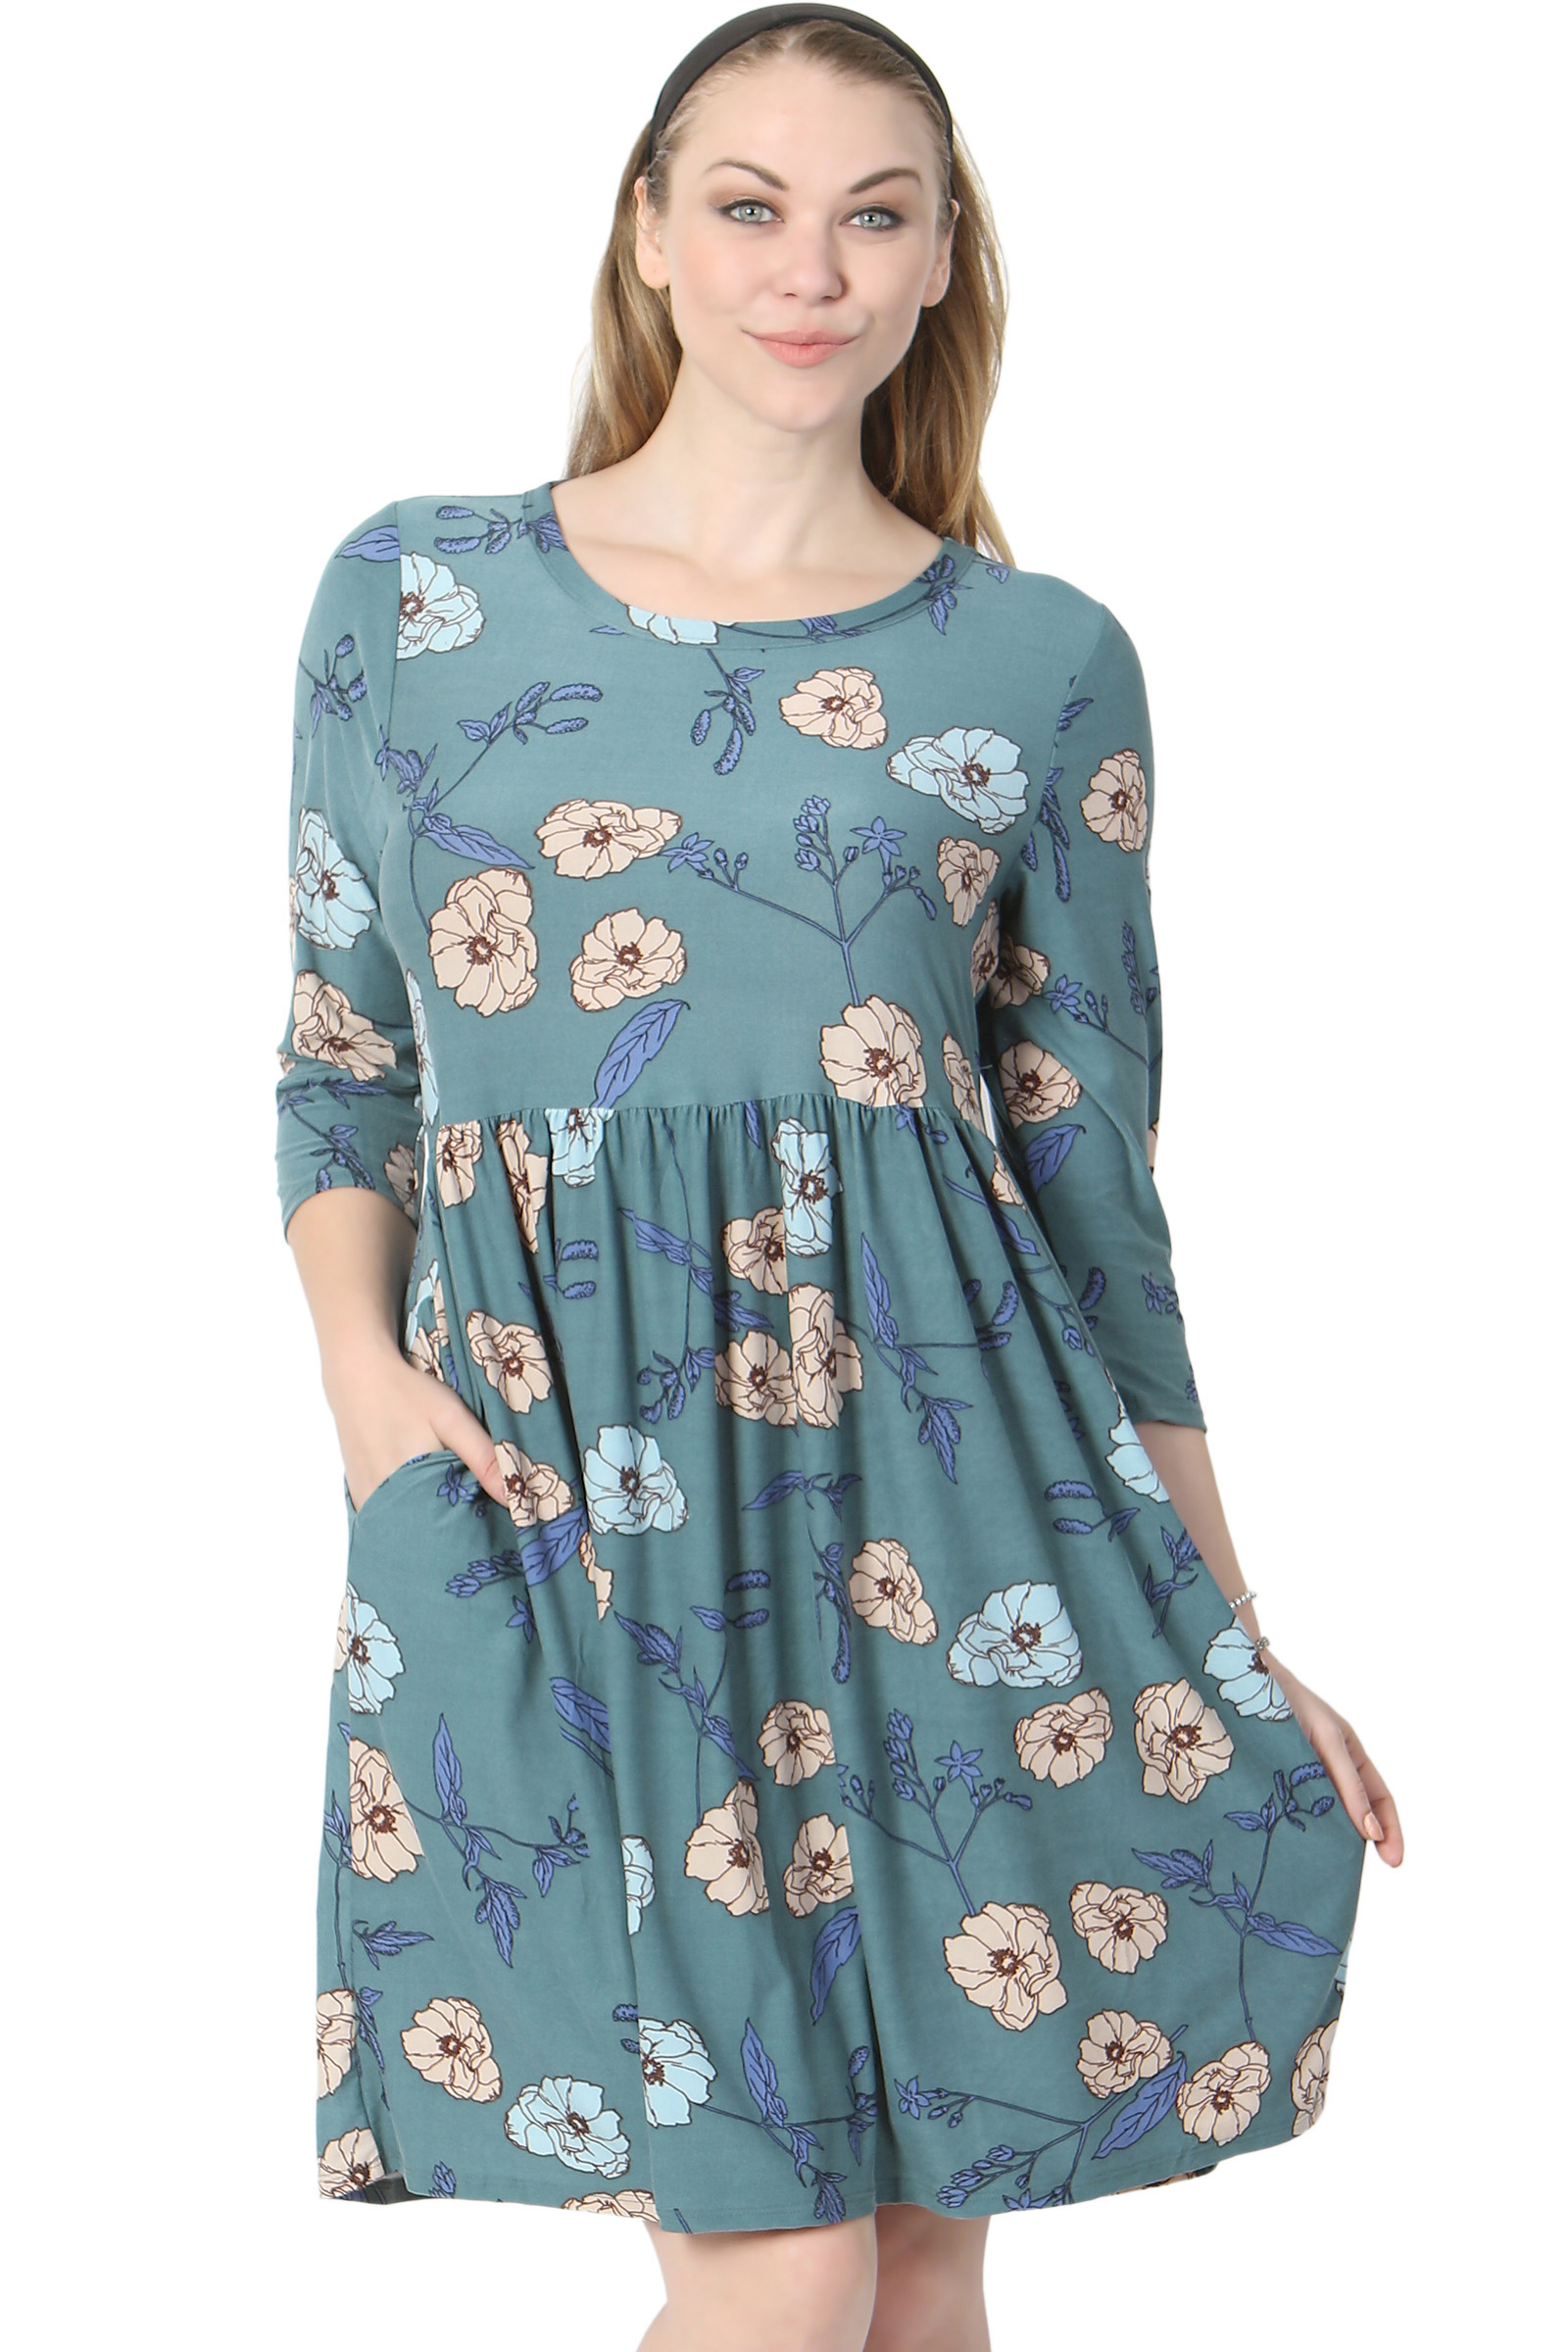 TheMogan Junior's Floral Print 3/4 Sleeve Empire Waist Stretch Babydoll Dress